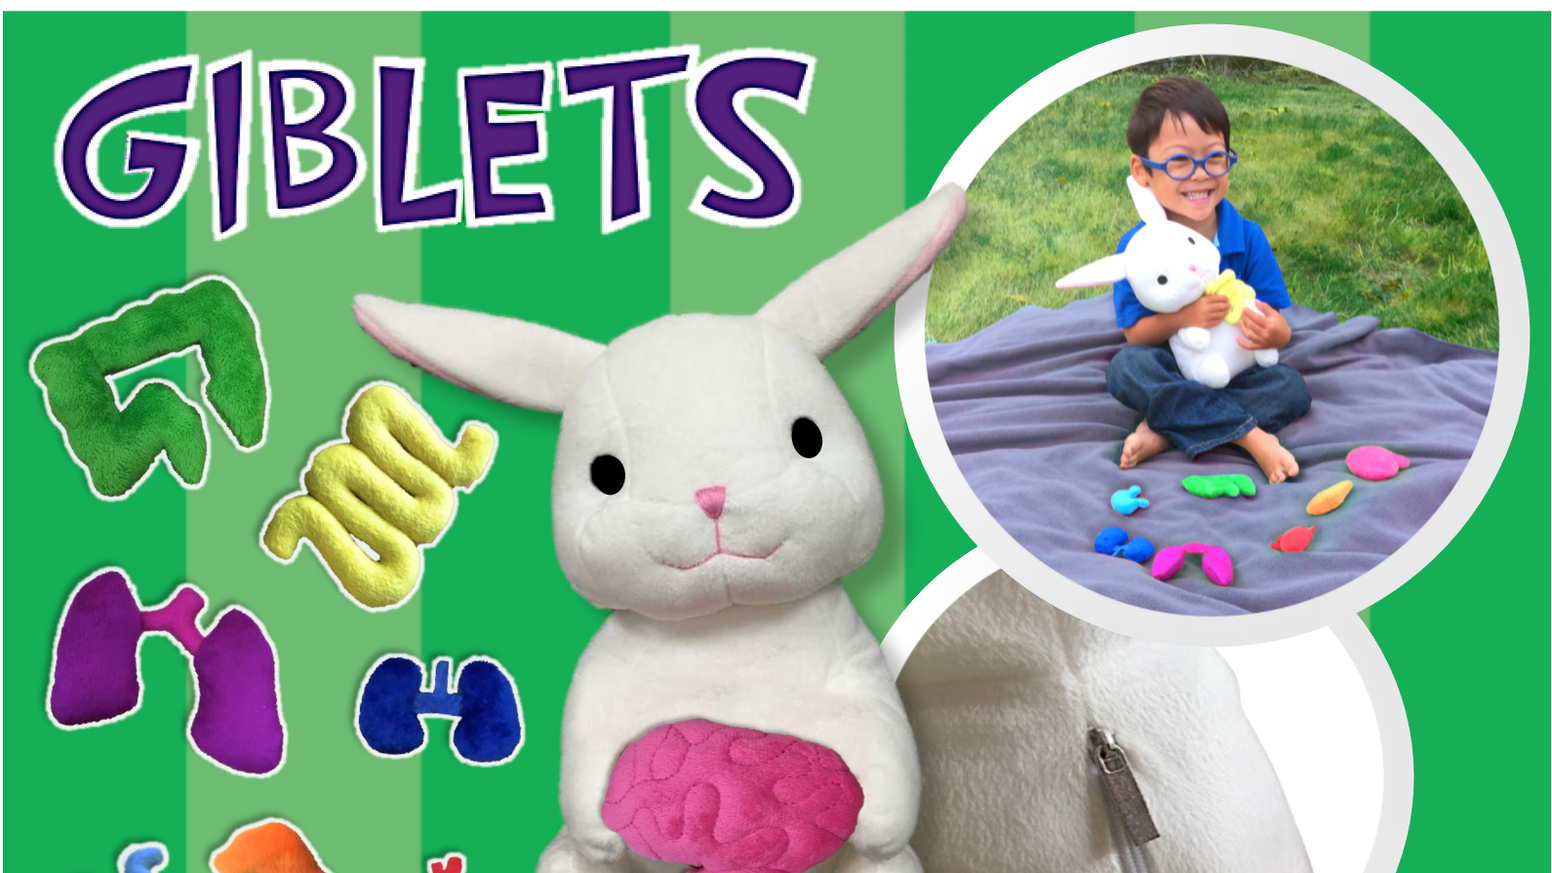 Giblets The Anatomy Bunny Childrens Learning Toy By Emily Zebala